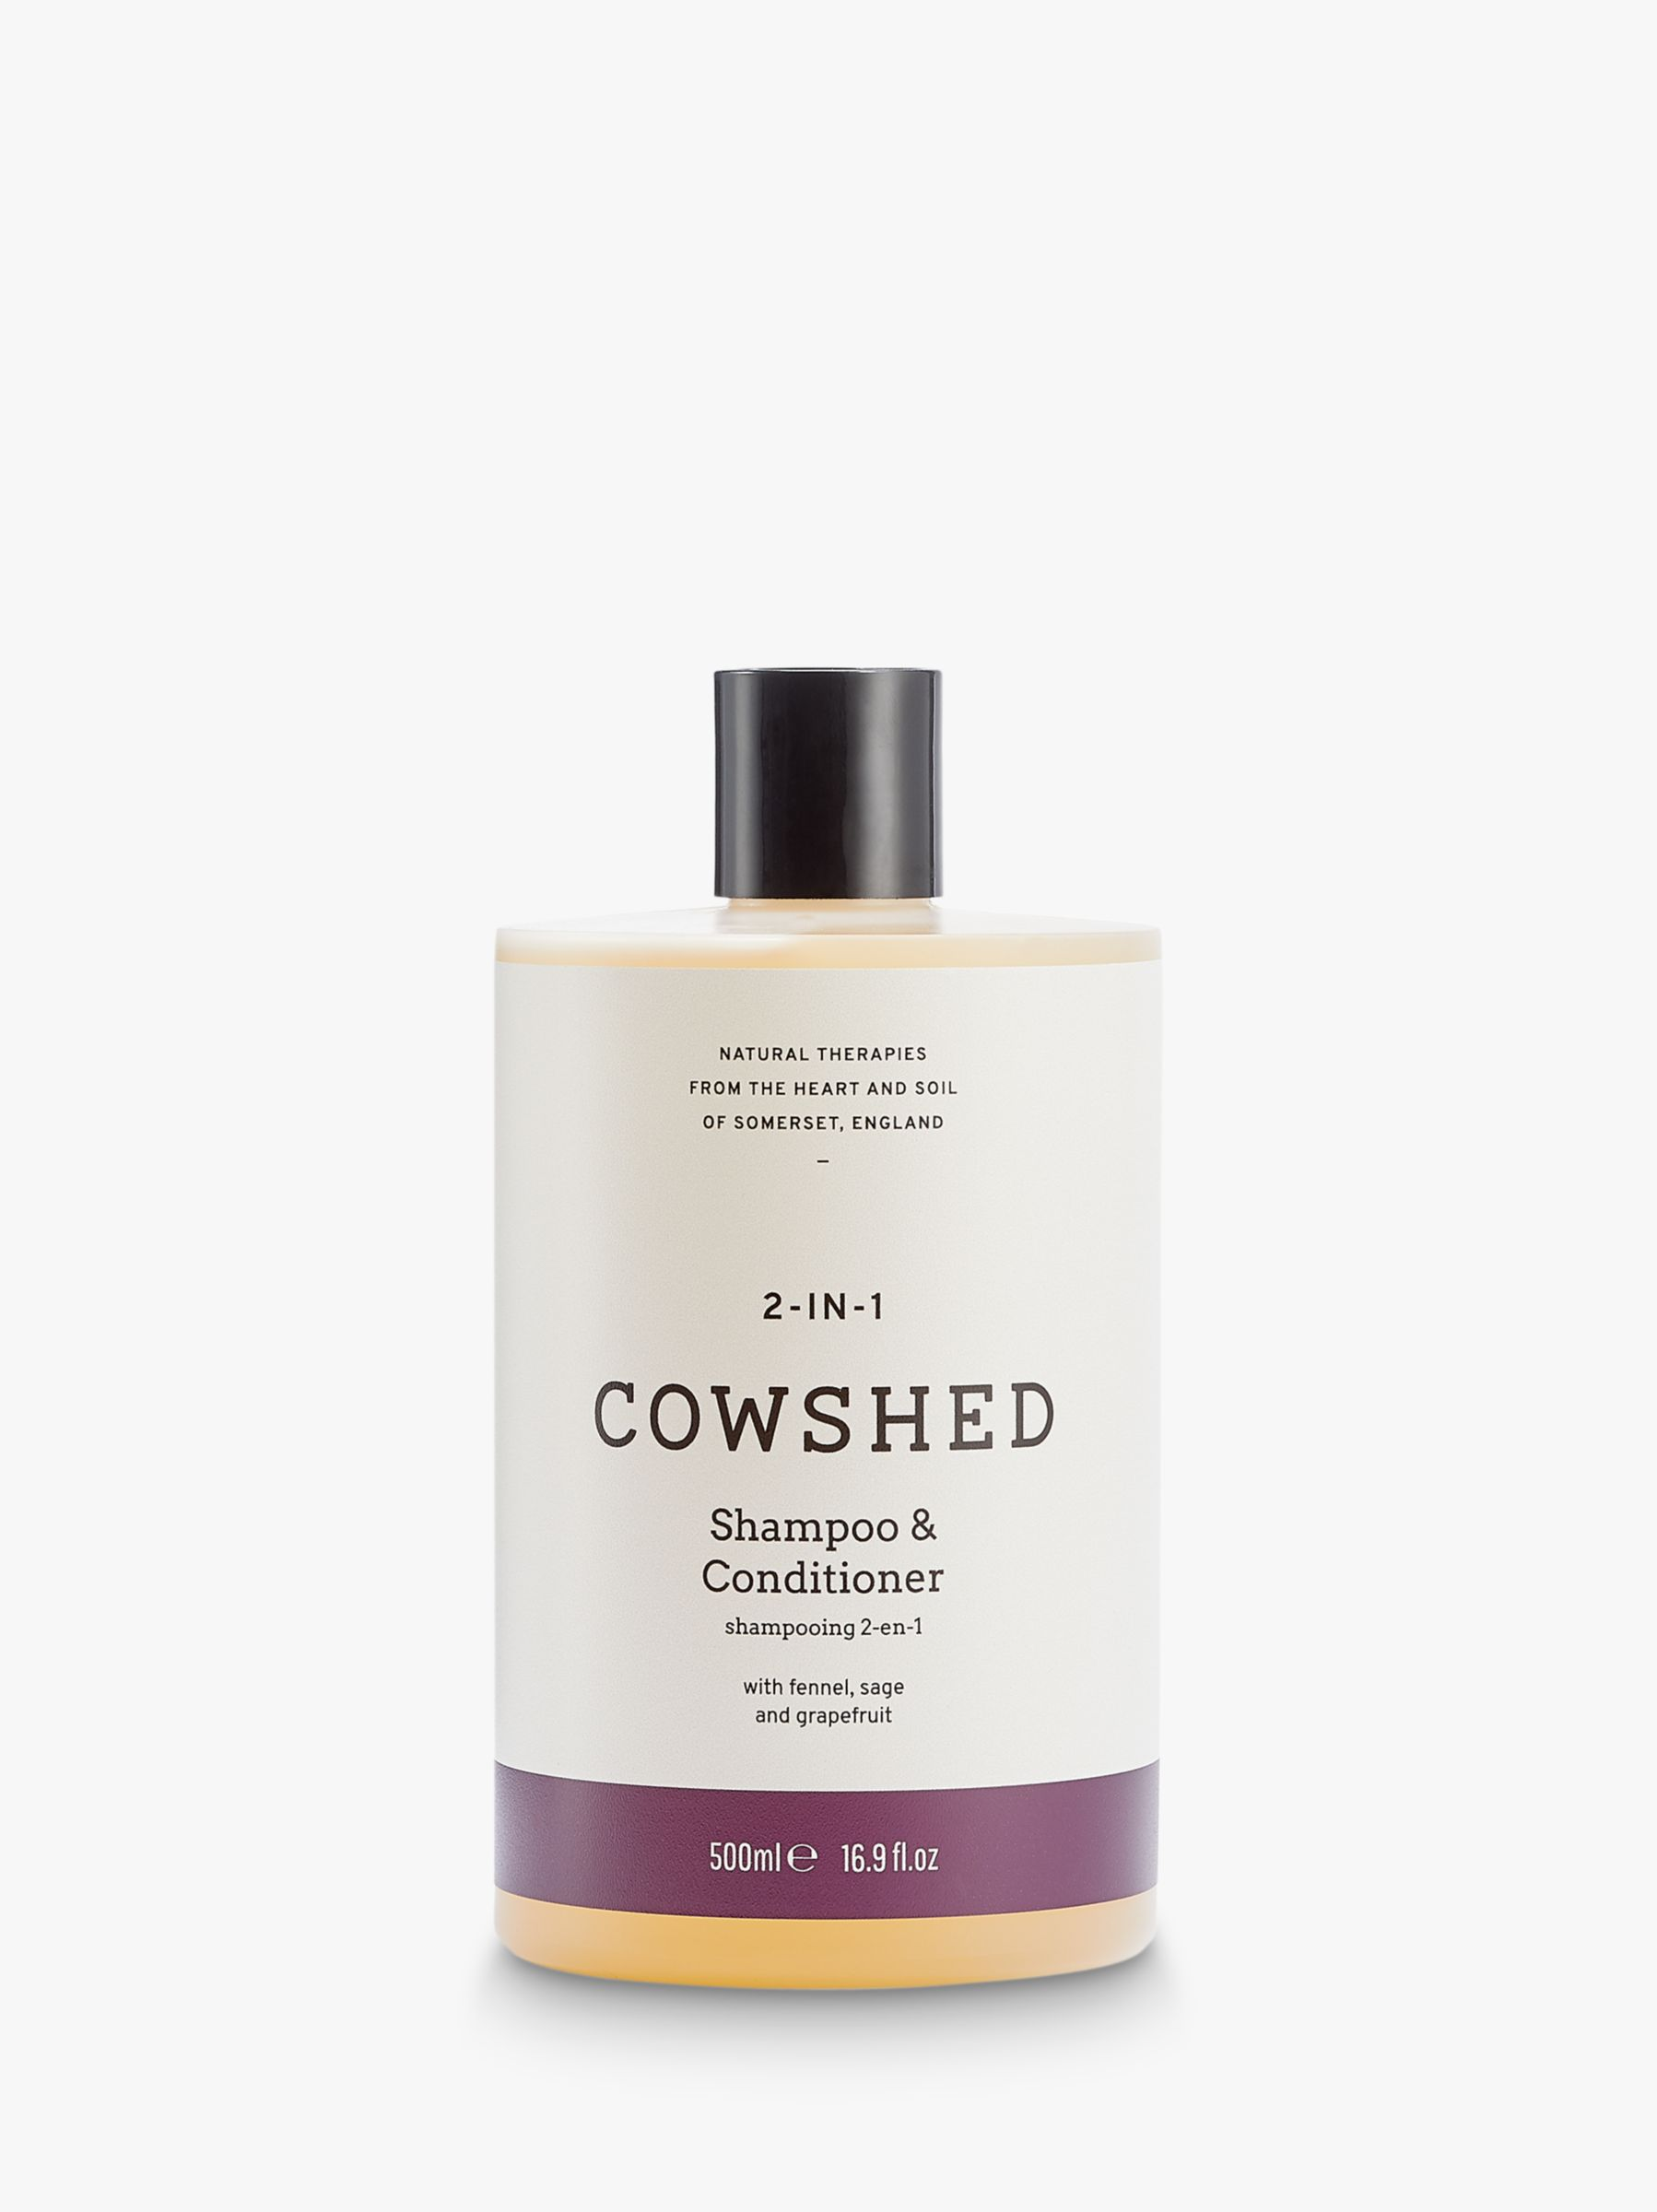 Cowshed Cowshed 2-In-1 Shampoo & Conditioner, 500ml